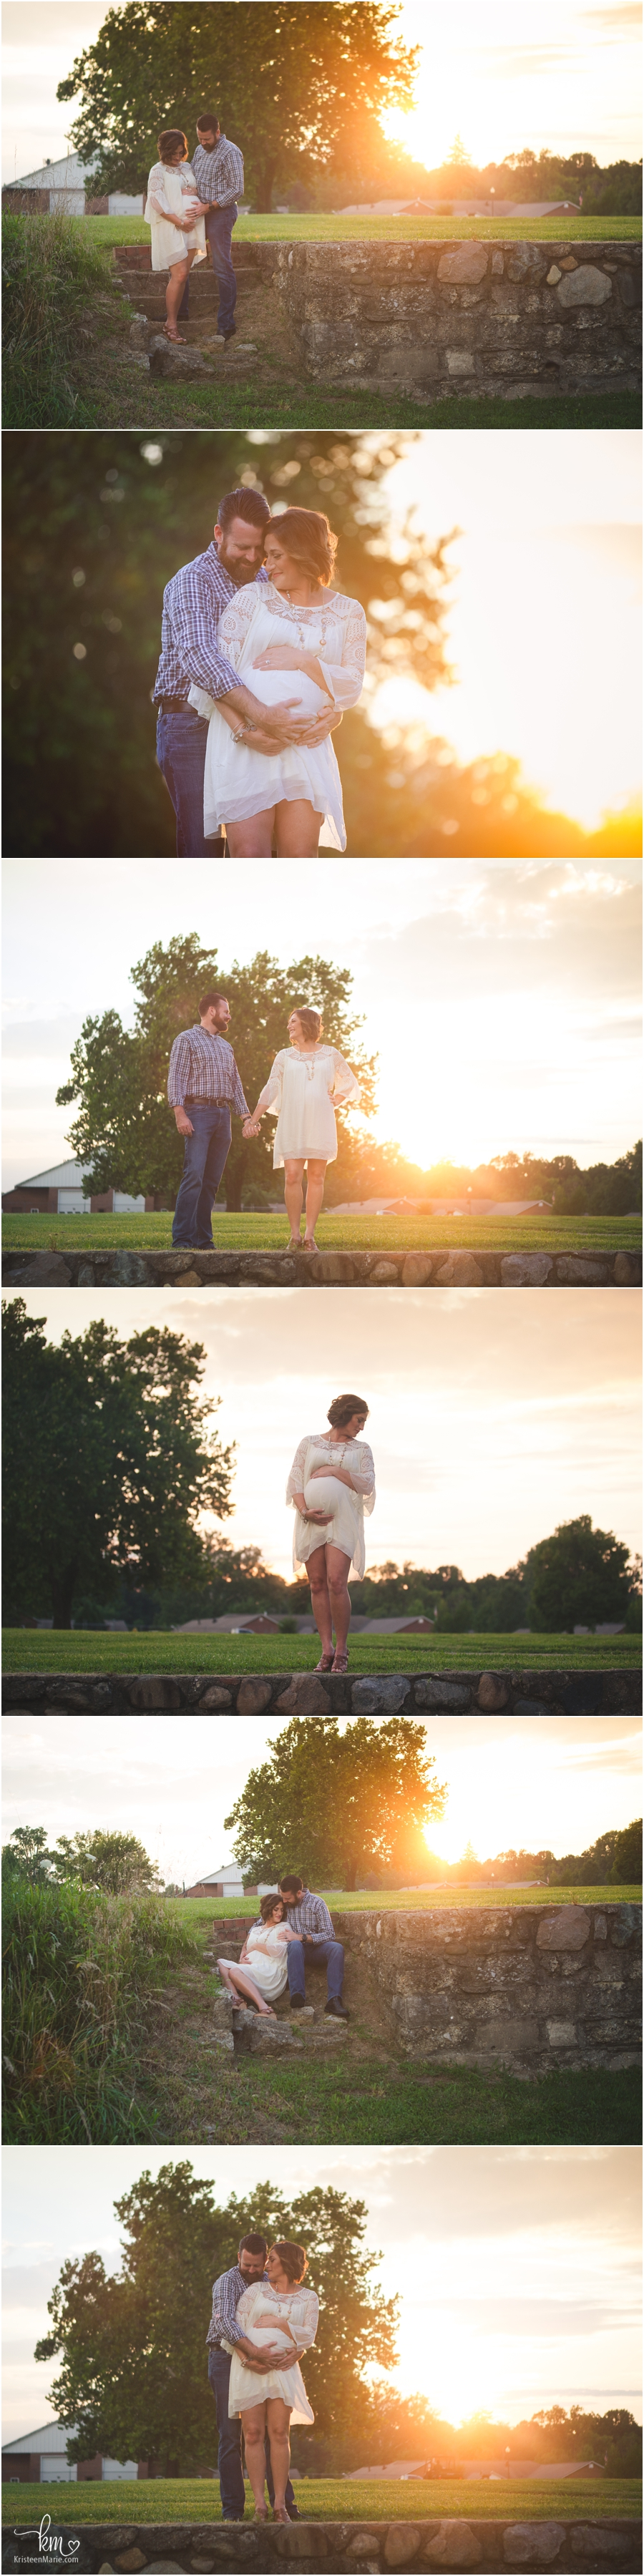 Stunning sunset maternity photography - beautifully backlit